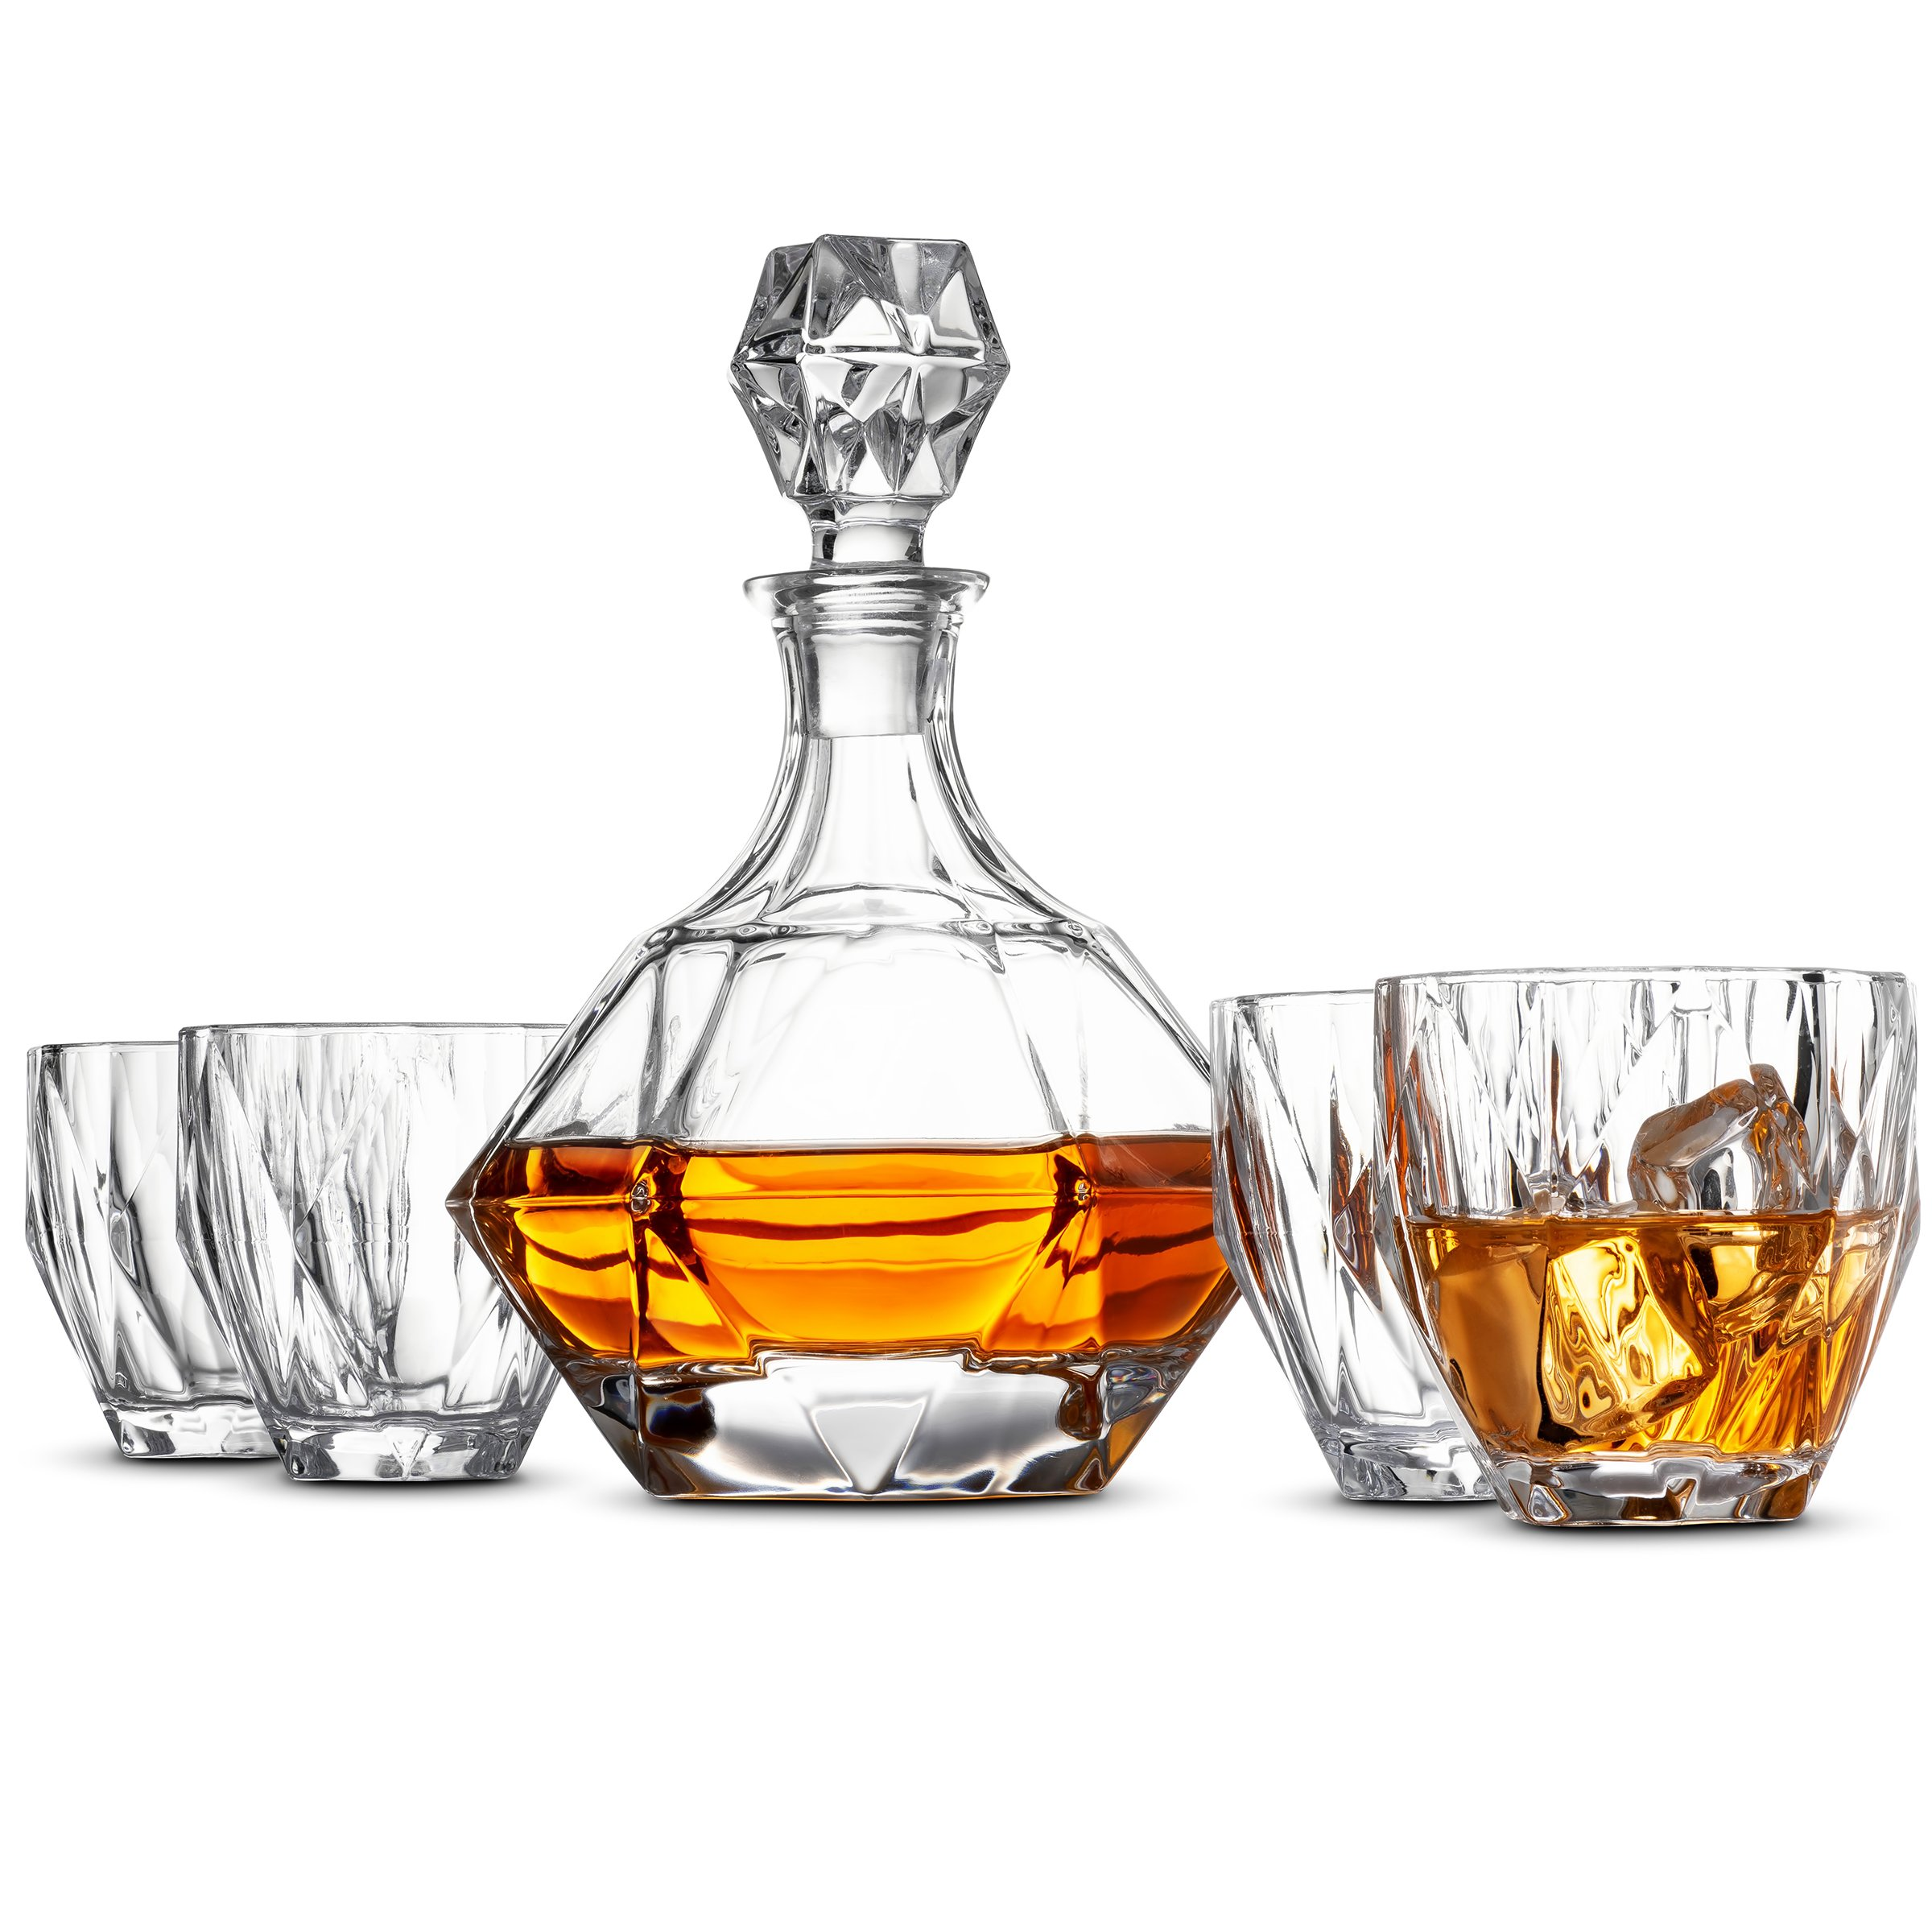 5-Piece European Style Whiskey Decanter and Glass Set - With Magnetic Gift Box - Exquisite Diamond Design Liquor Decanter & 4 Whiskey Glasses - Perfect Whiskey Decanter Set for Scotch Alcohol Bourbon.